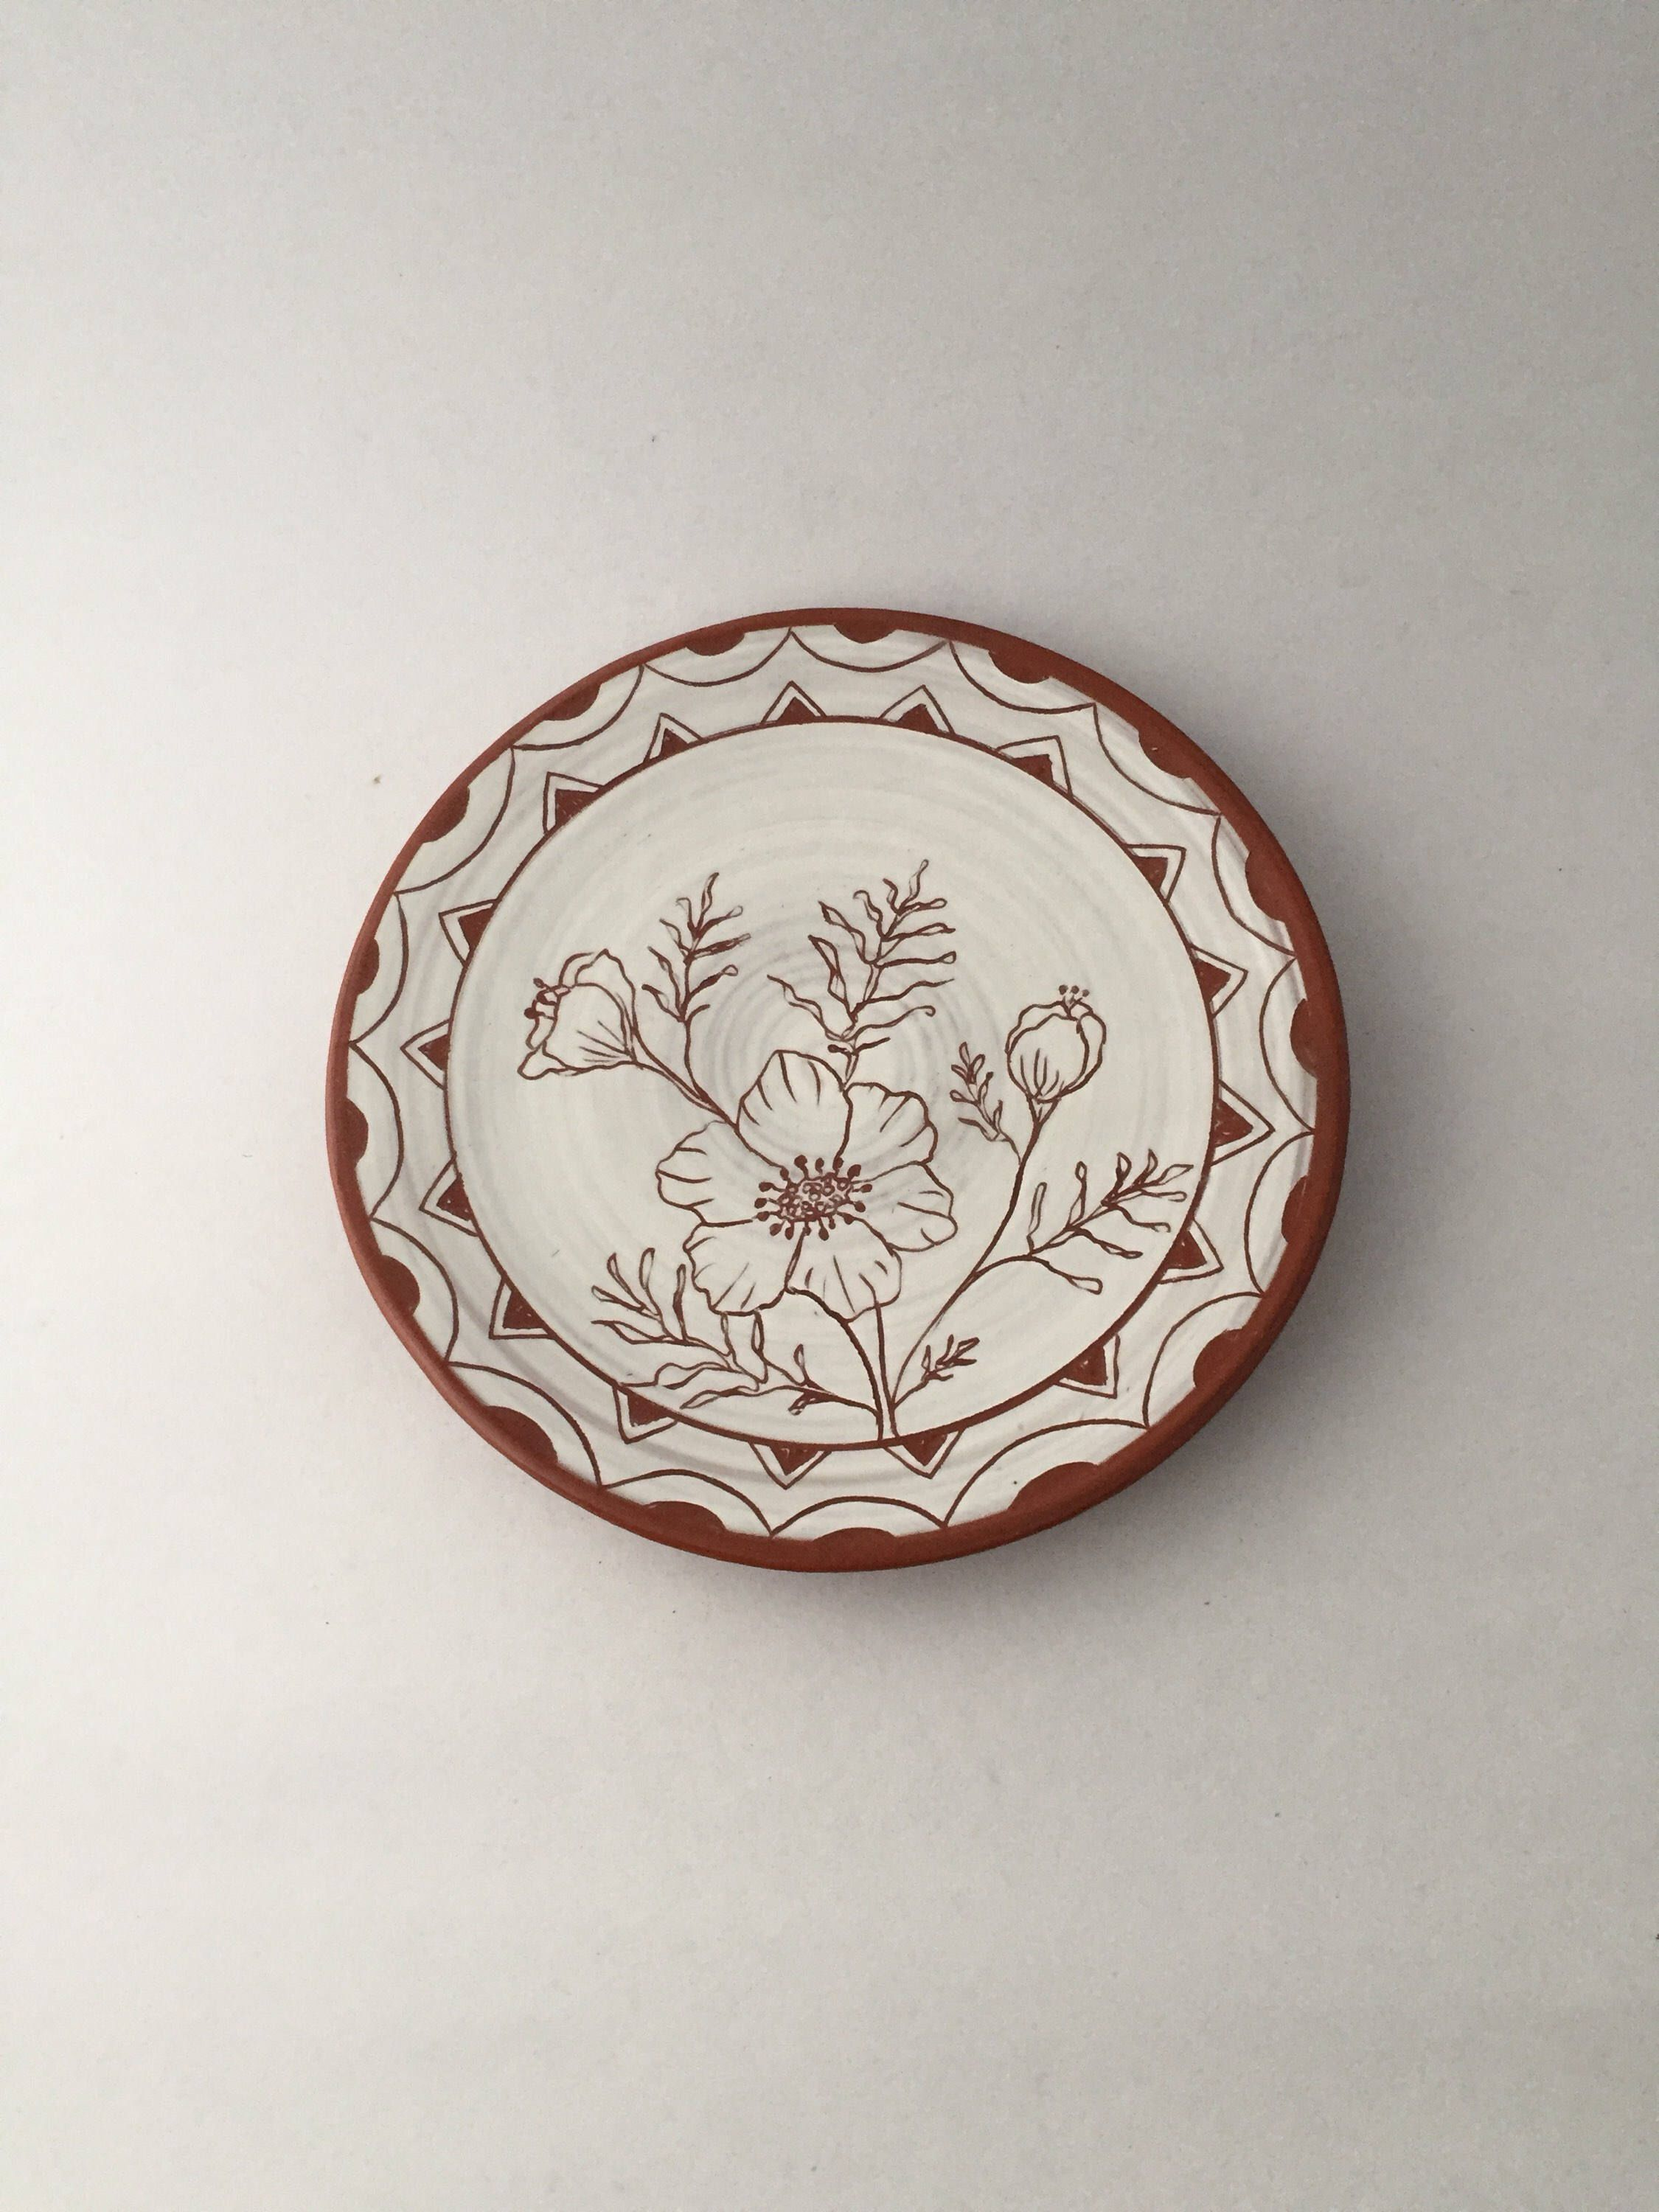 Pin By Erin W On Ceramic In 2020 Pottery Plates Pottery Hand Thrown